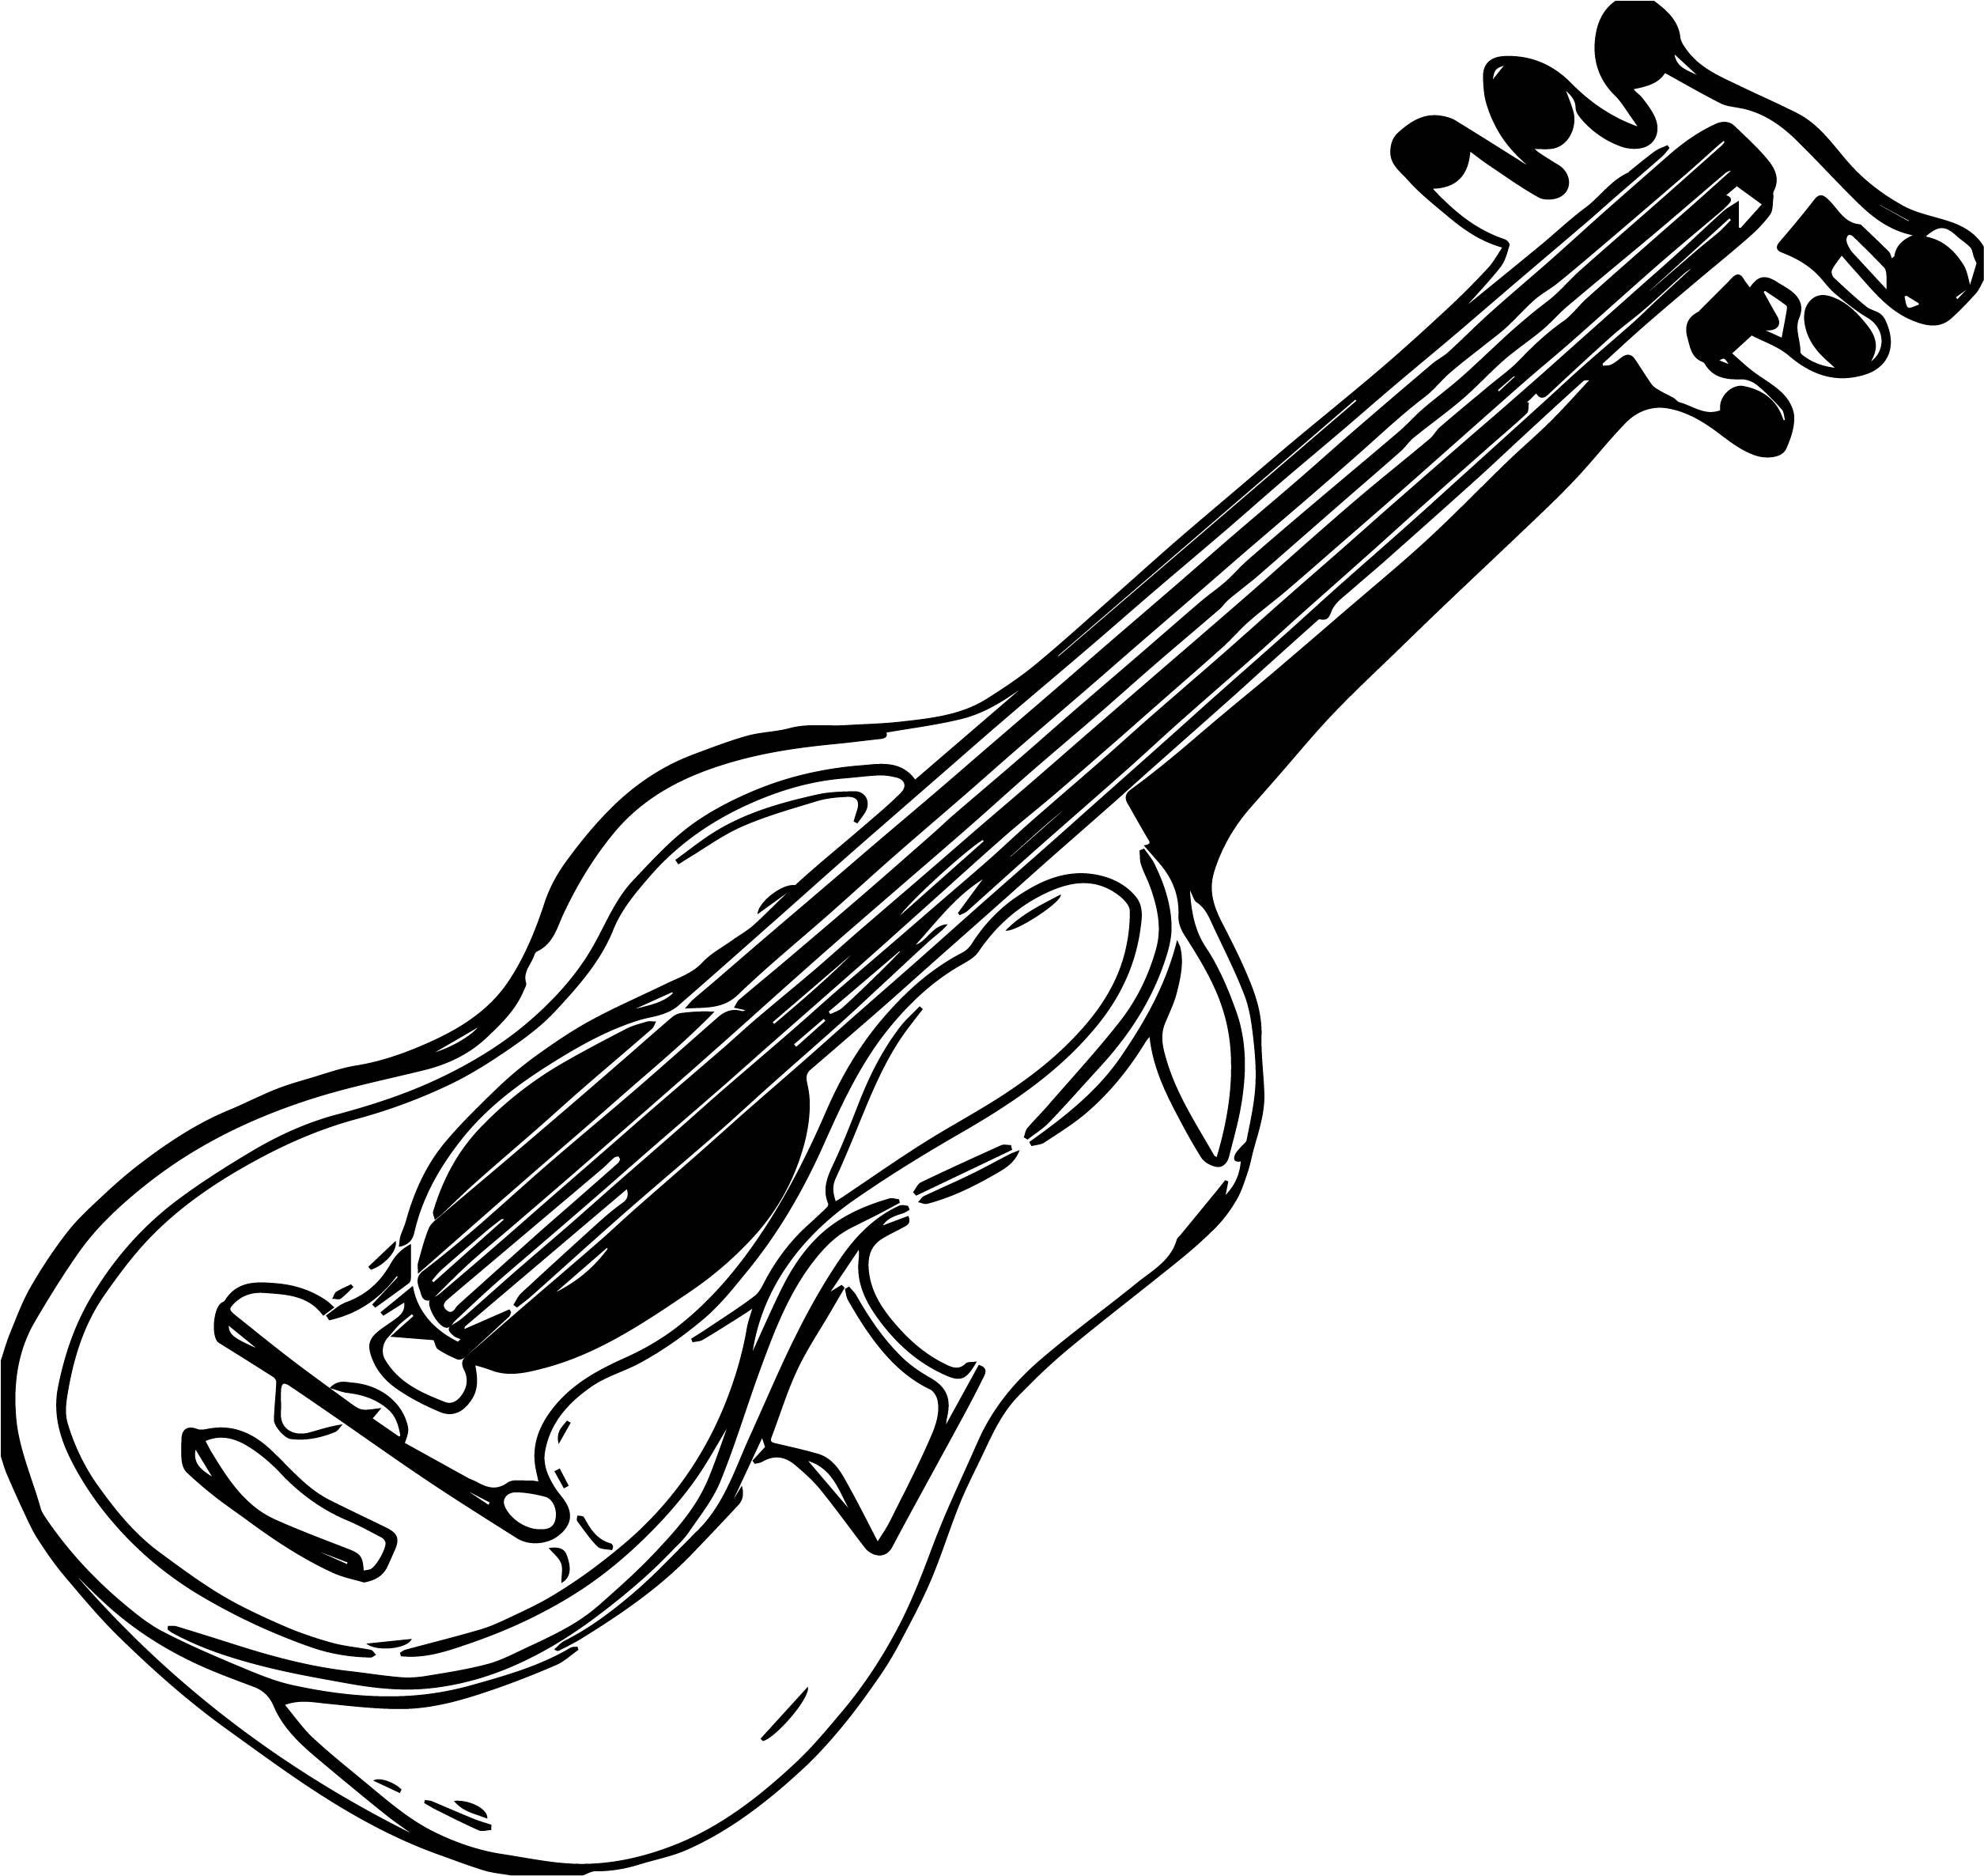 93 Draw Electric Guitar Coloring Page 84 With Additional Pages For Kids Online